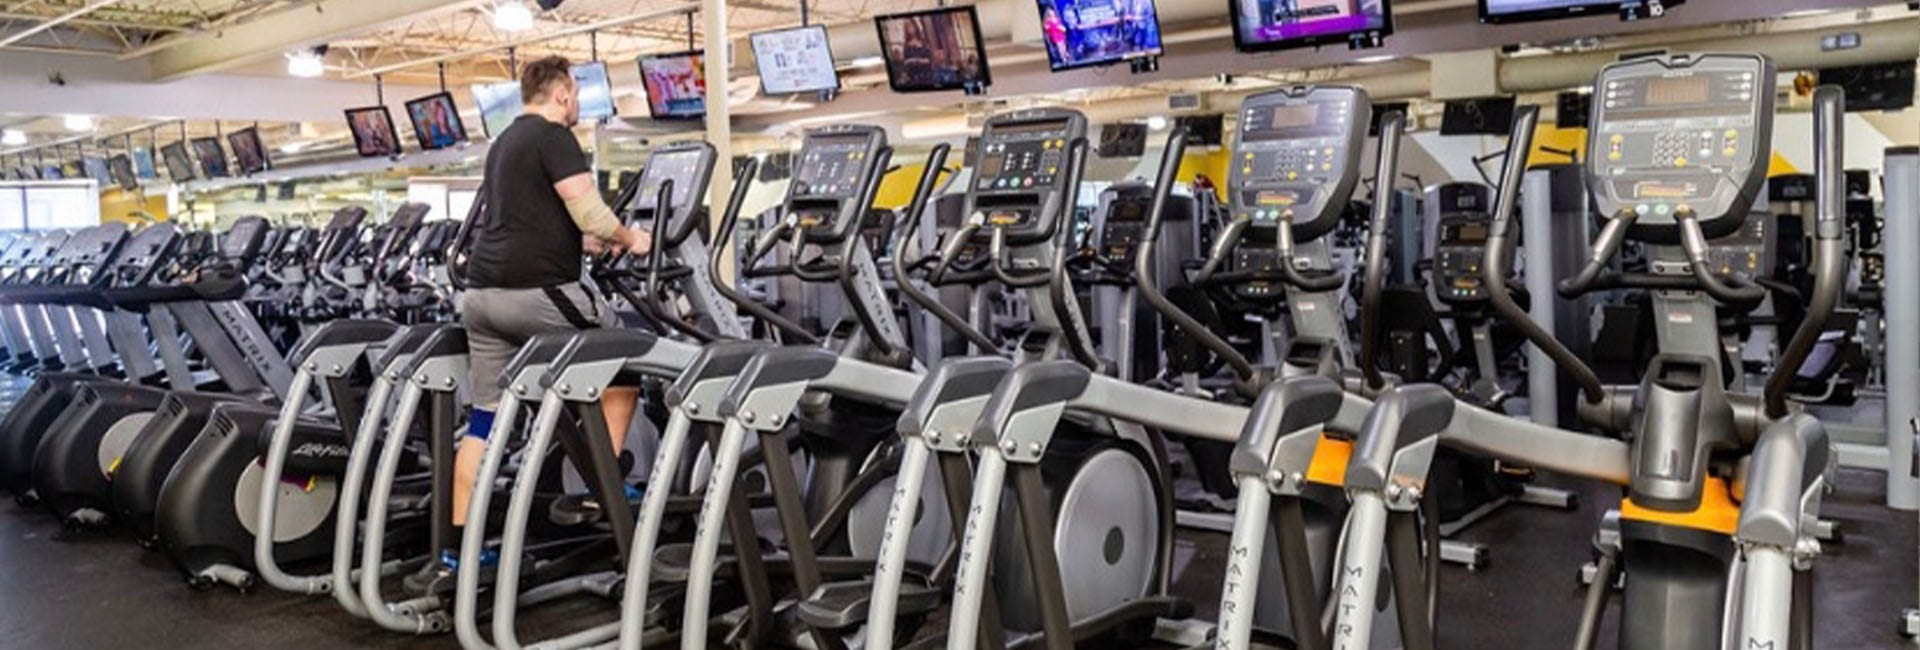 rows of cardio machines in modern gym